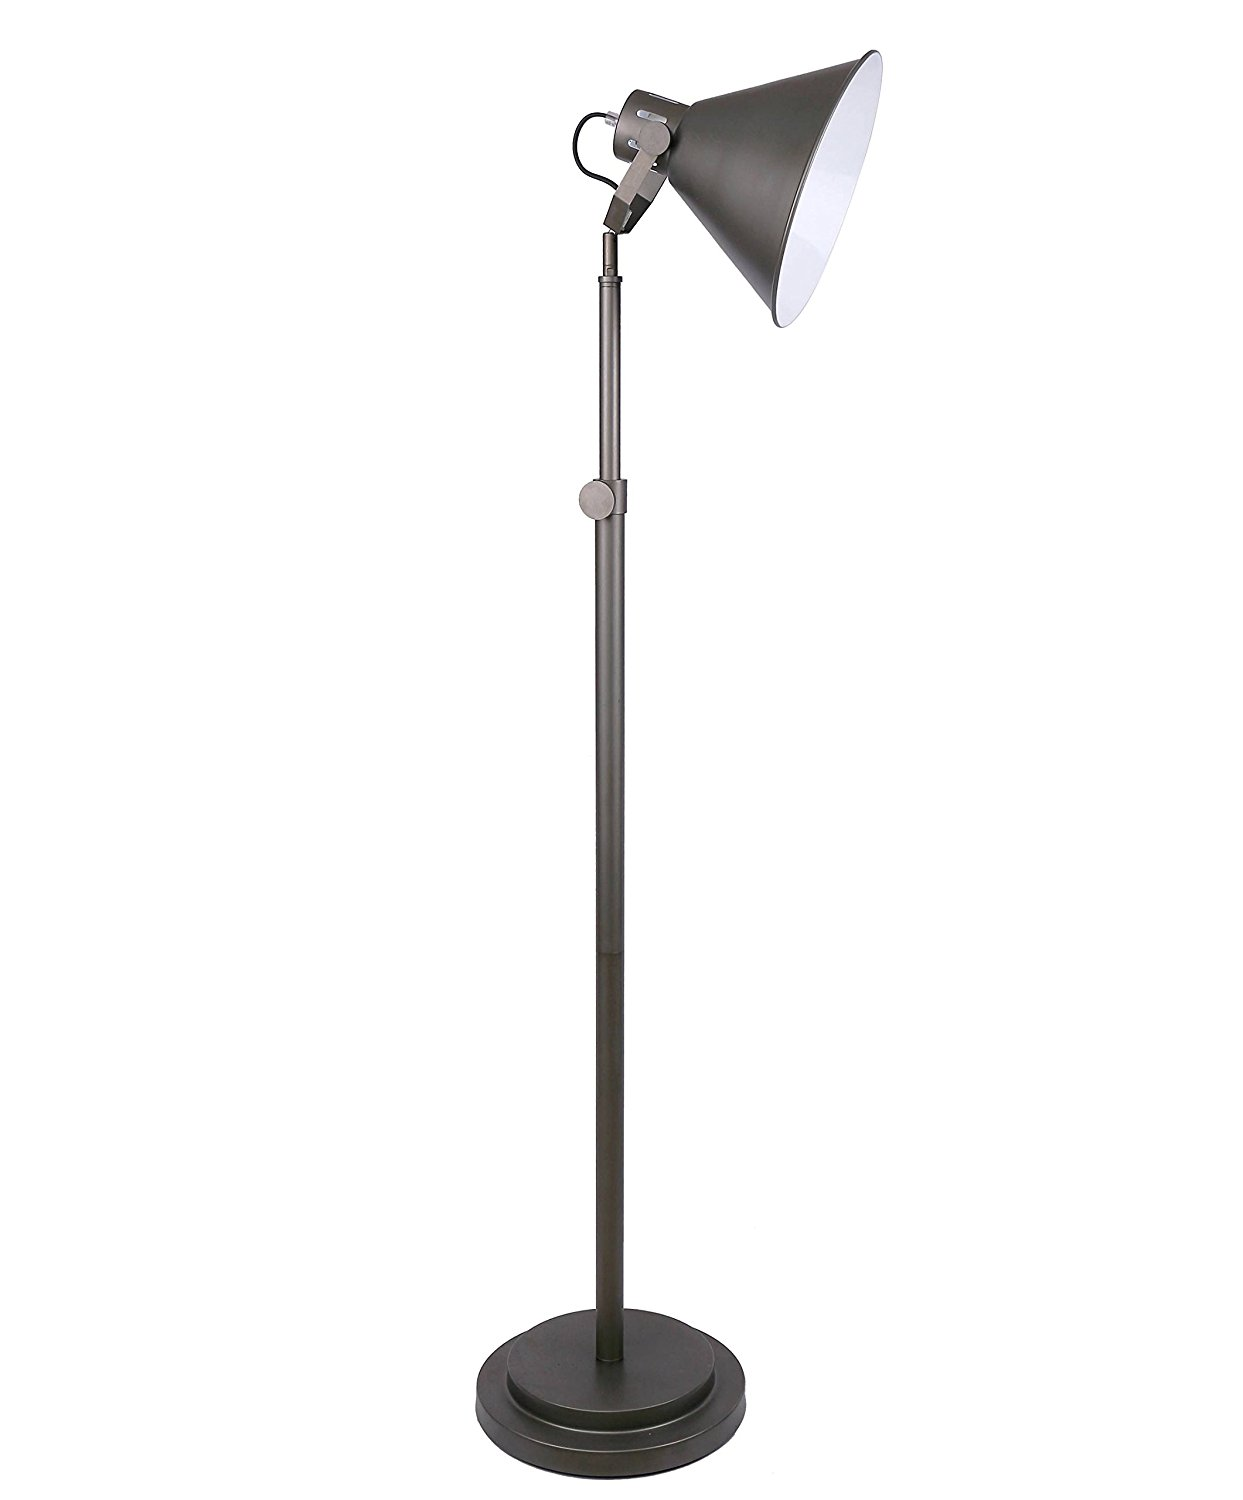 "Grandview Gallery Cast Iron Adjustable Metal Floor Lamp Adjustable 55""- 63"" Industrial Design for Living Room, Study and More"